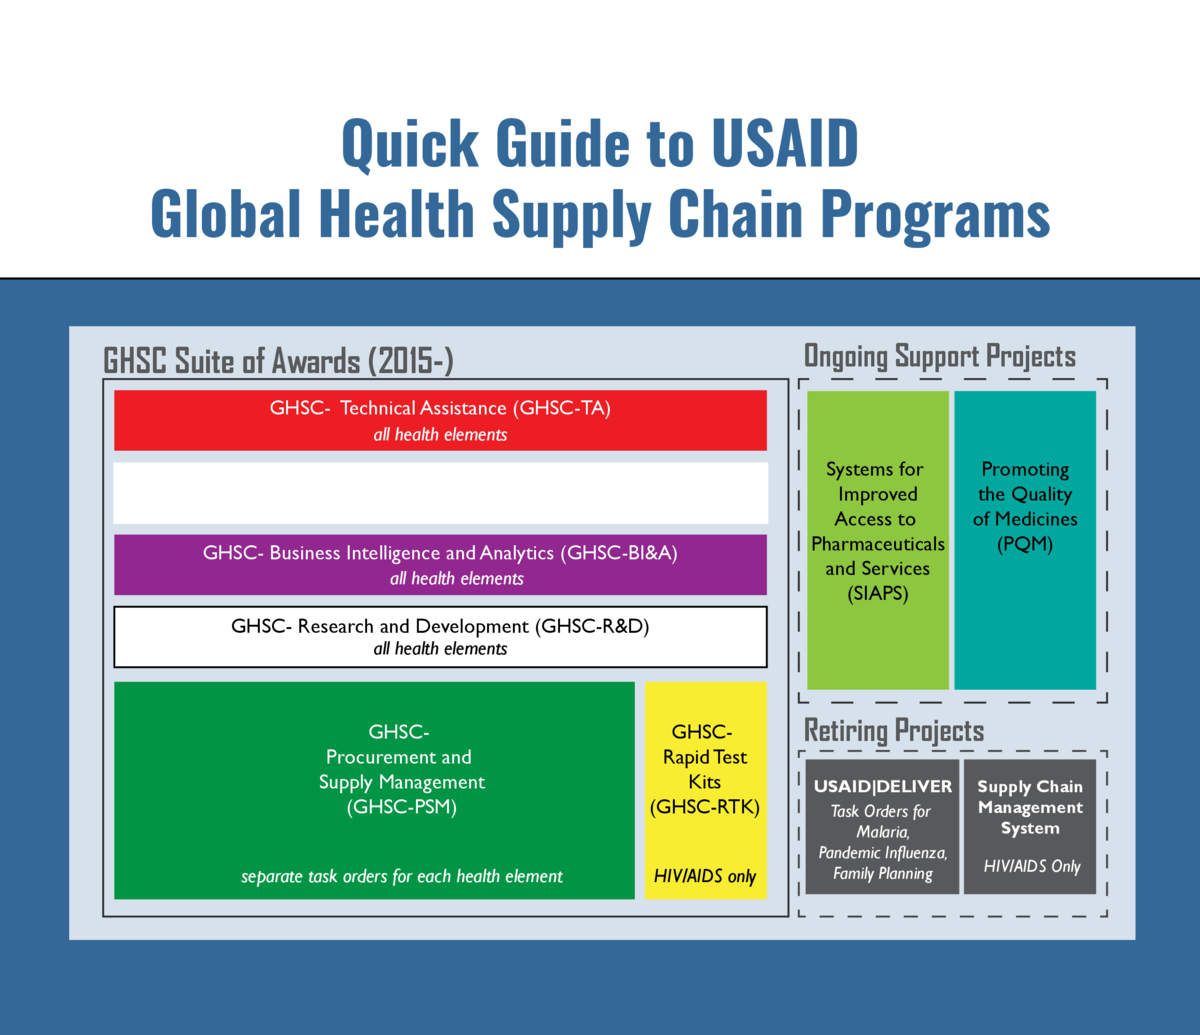 Quick Guide to USAID Global Health Supply Chain Programs USAID GLOBAL  HEALTH SUPPLY CHAIN PROJECTS Ongoing